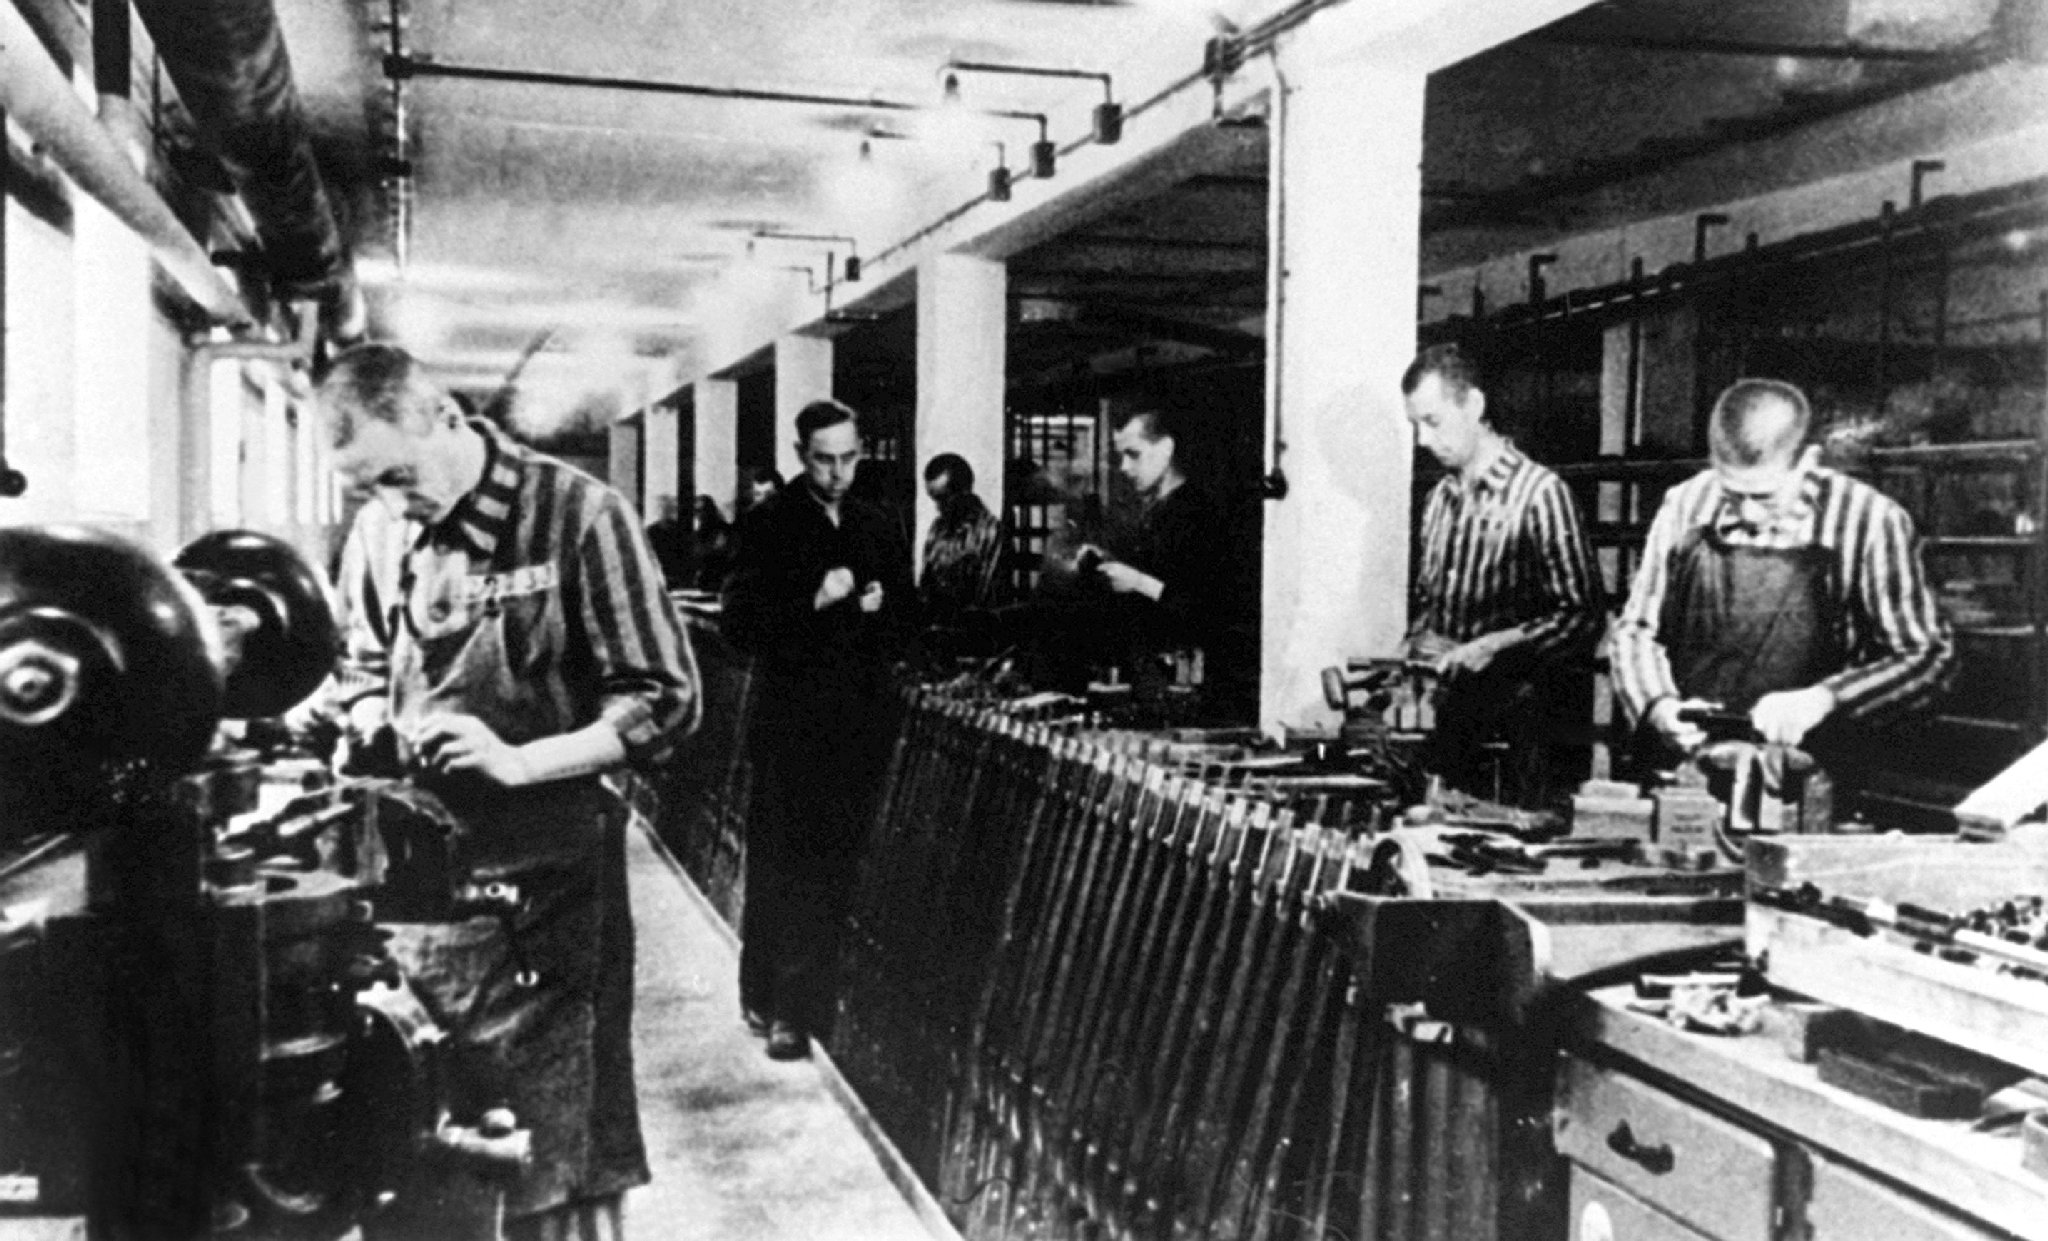 Undated file picture showing slave labourer producing weapons in the Nazi concentration camp in Dachau. Germany and the United States have reached an agreement on compensation for former Nazi slaves, a spokesman for German government negotiator Otto Lambsdorff said 14 December 1999. It was not said if lawyers for the victims had joined the accord, nor how much was now being offered. Lambsdorff announced earlier that the Germany was ready to increase its compensation offer to speed up negotiations. B/W ONLY / AFP PHOTO / DPA (Photo credit should read /DPA/AFP via Getty Images)